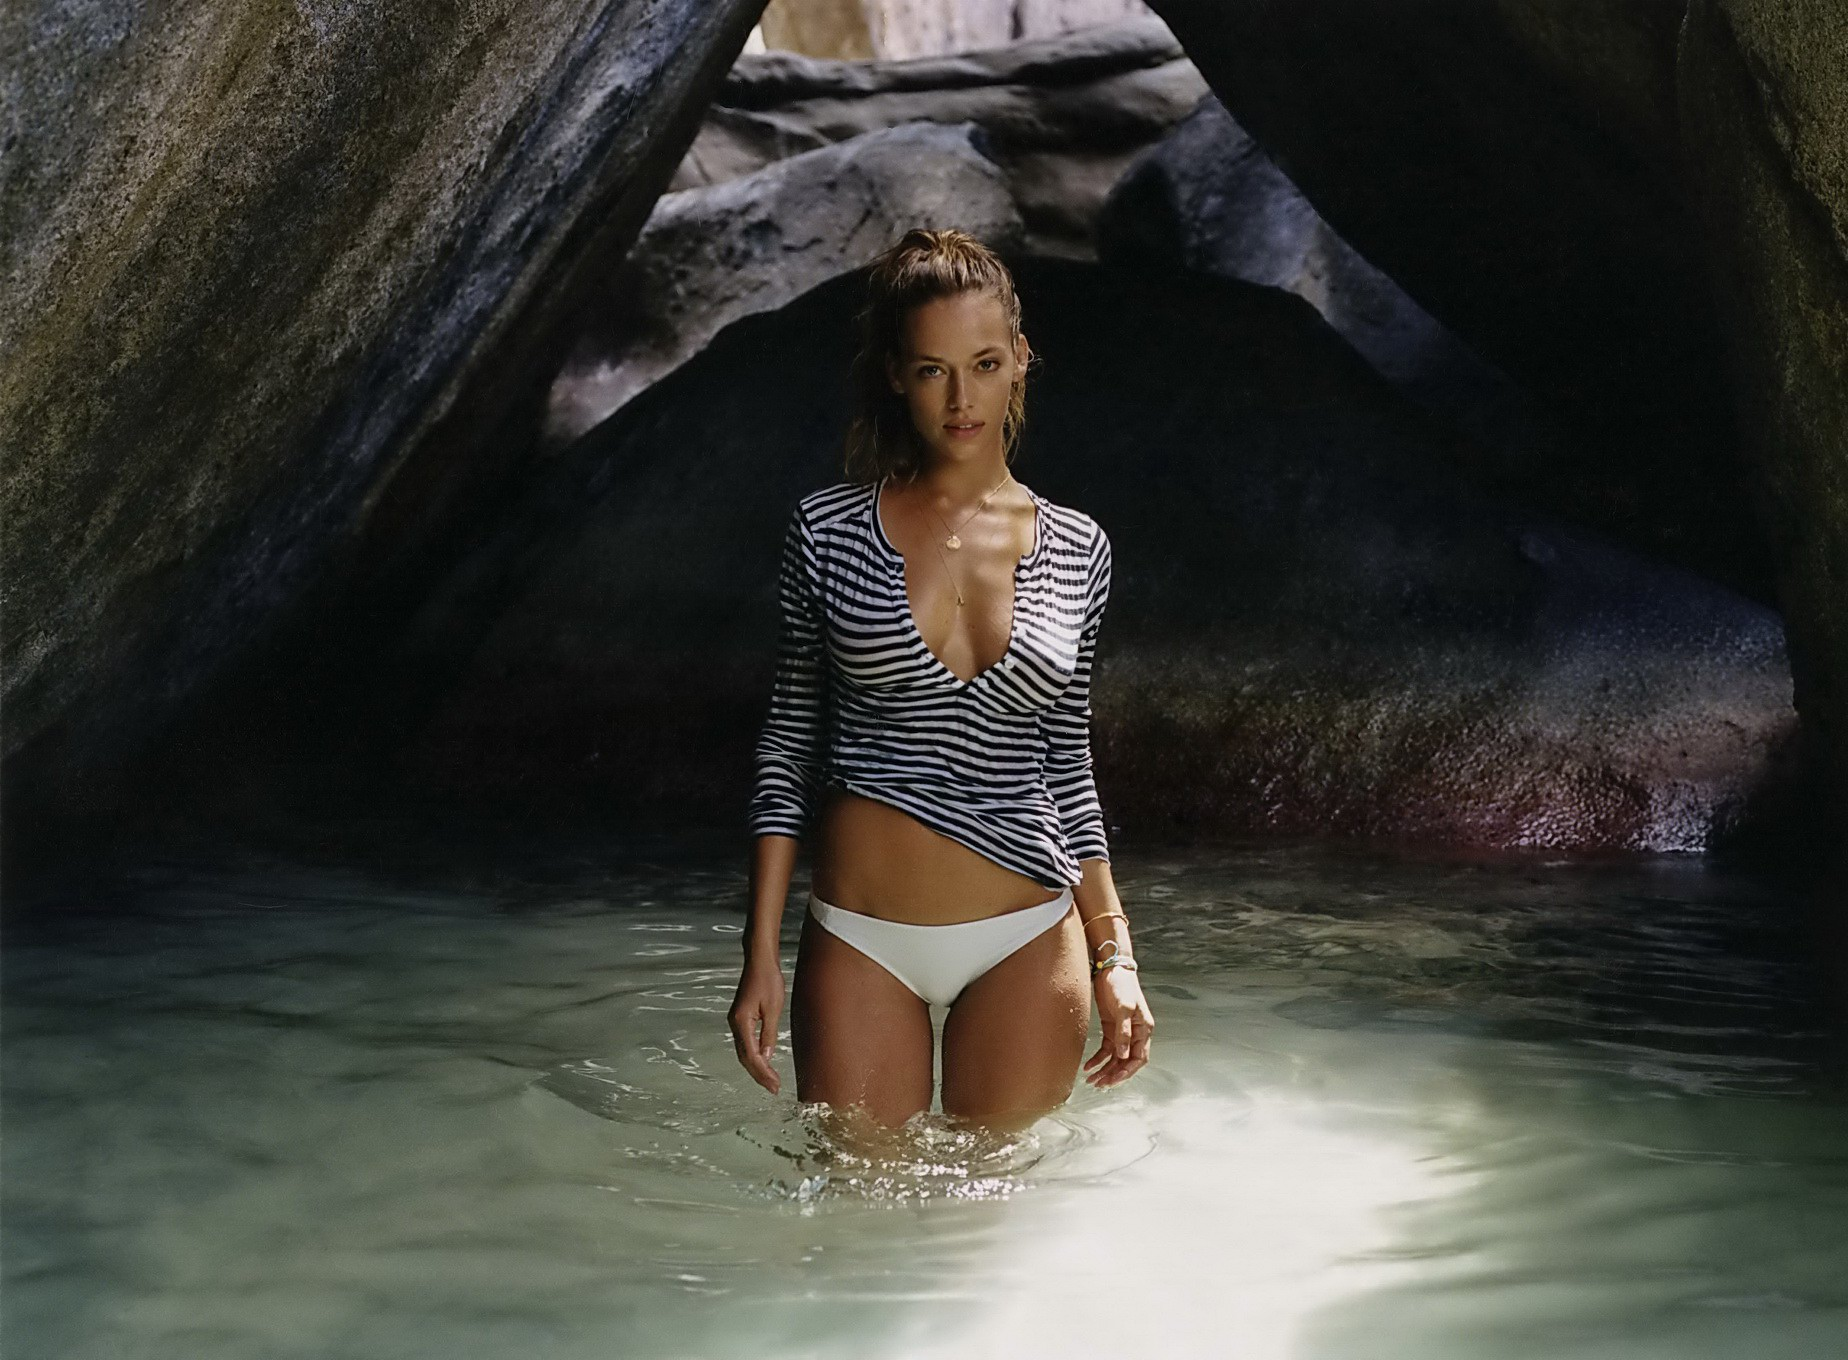 hannah ferguson showing off her hot bikini body for galore magazine